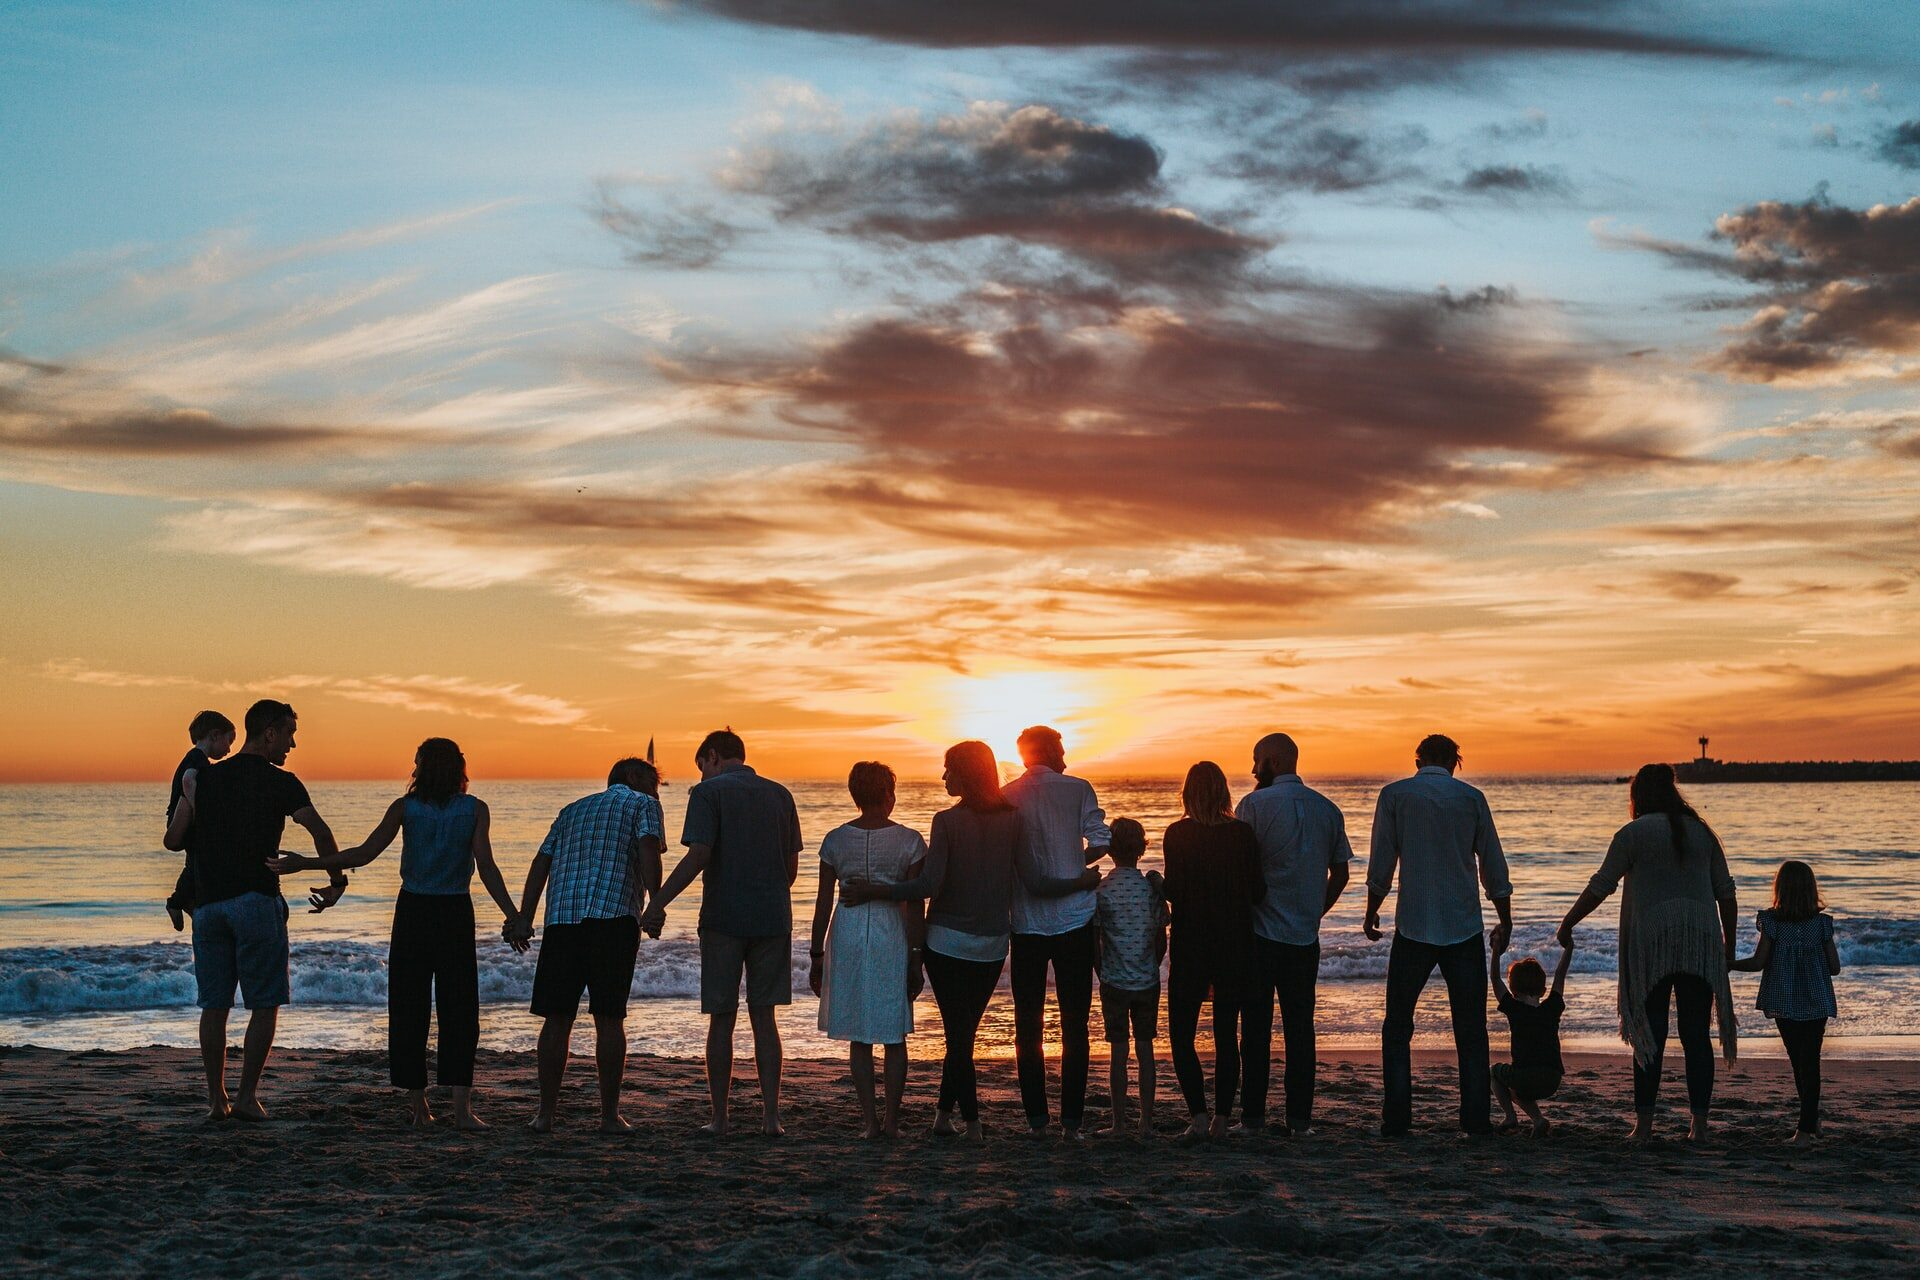 People stand together on a beach, facing the sunset behind the water.